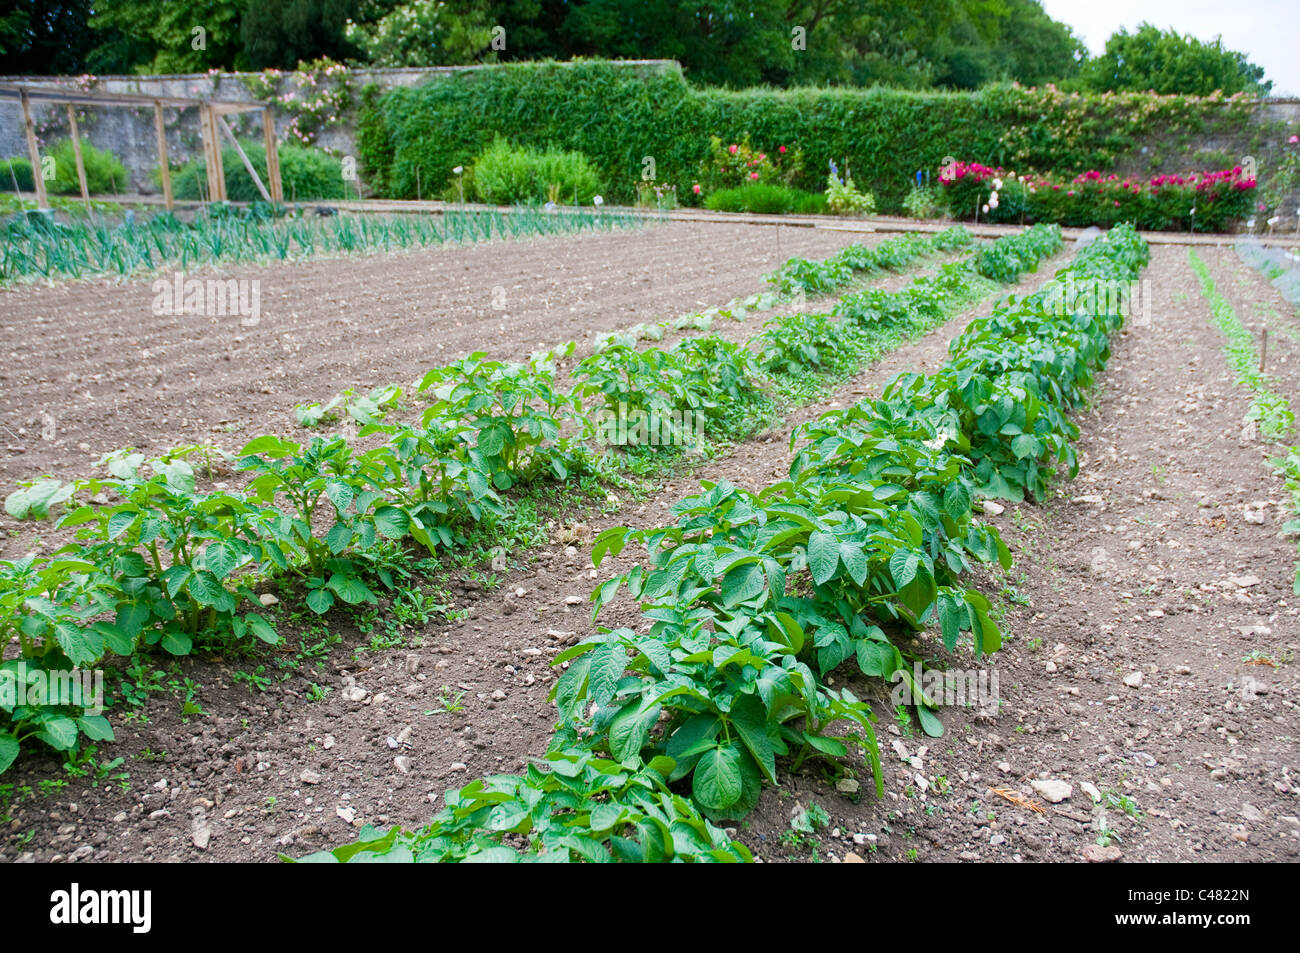 Vegetable garden rows - Two Straight Rows Of Potato Plants Growing In A Formal Vegetable Garden Stock Photo